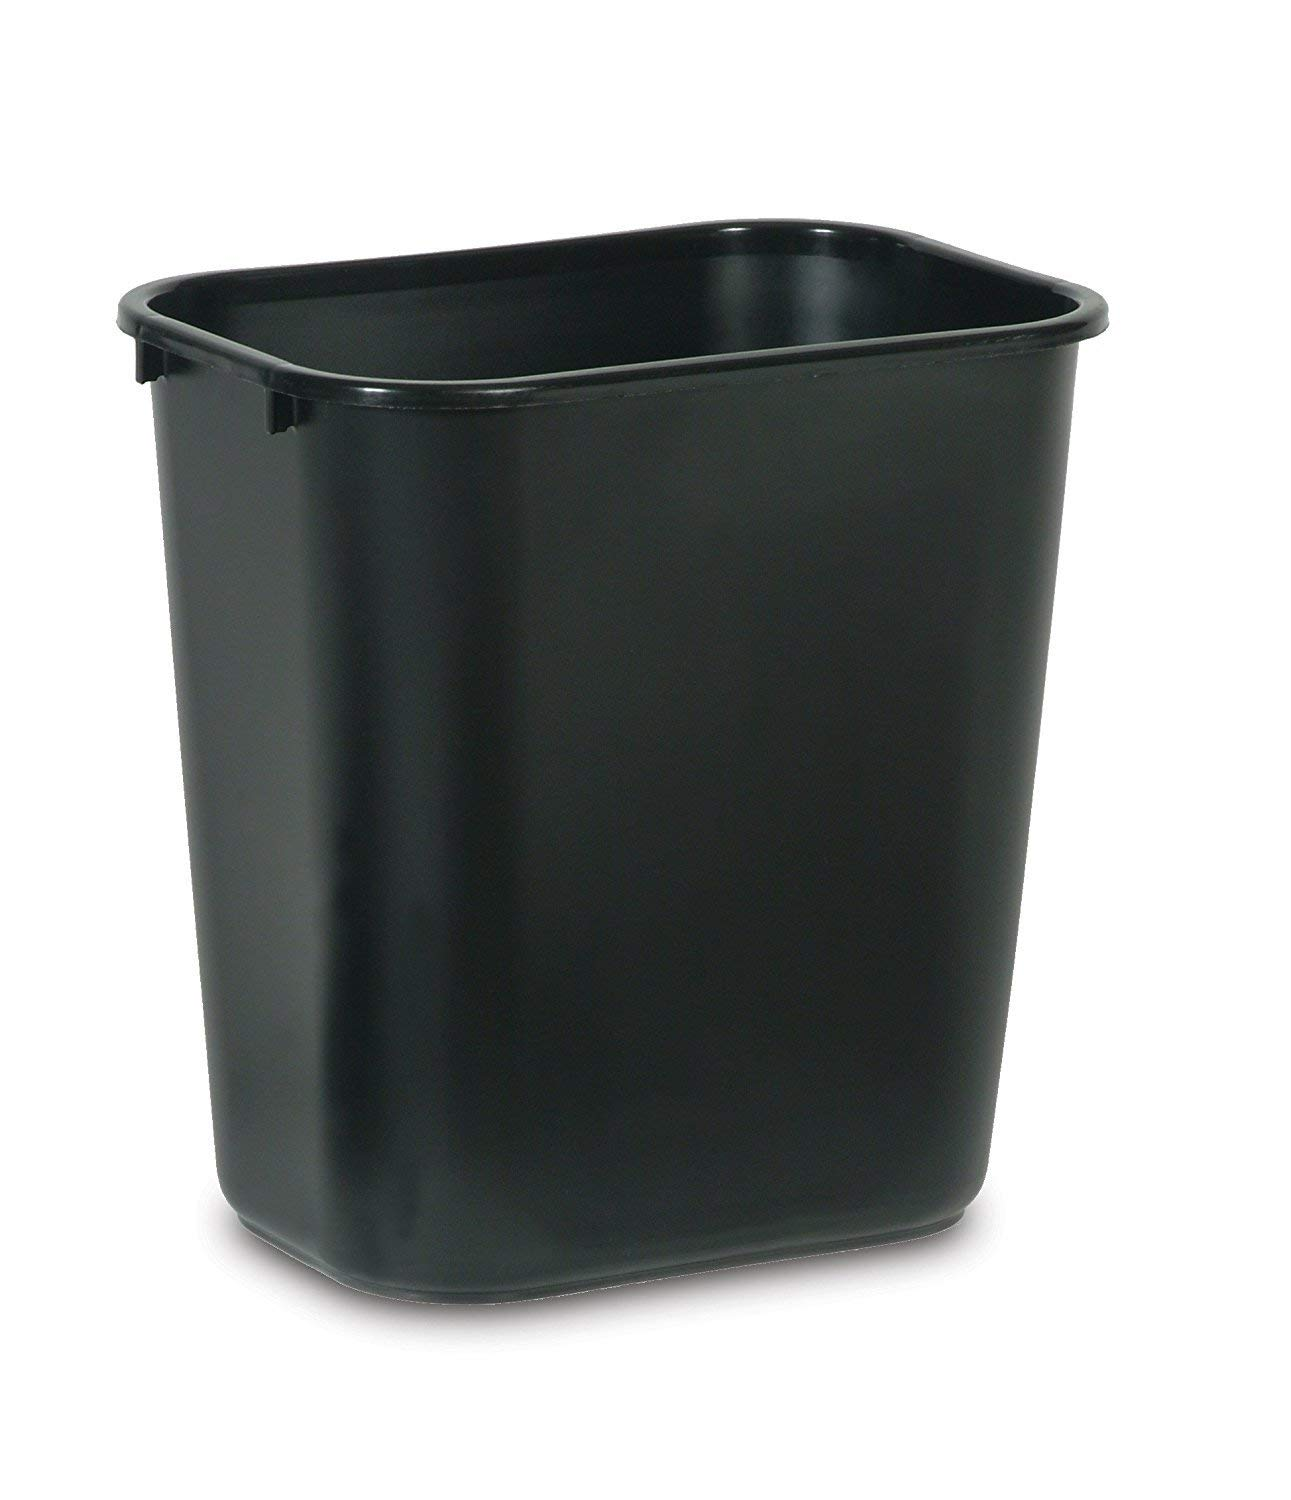 Rubbermaid Commercial Products 2063171 Plastic Resin Deskside Wastebasket, 7 Gallon/28 Quart, Black (Pack Of 4)